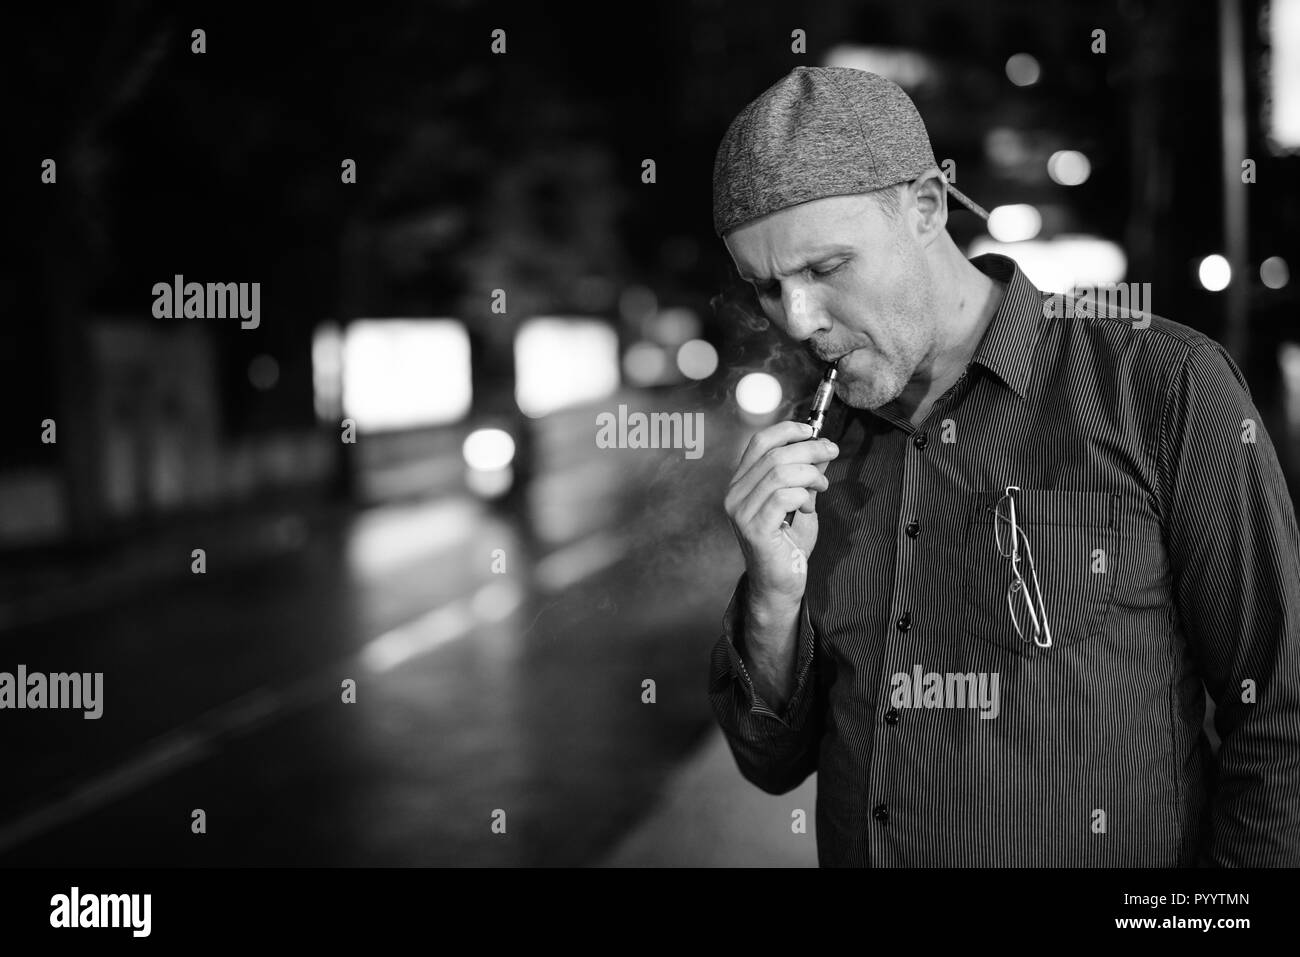 Mature man smoking electronic cigarette in the streets at night  Stock Photo